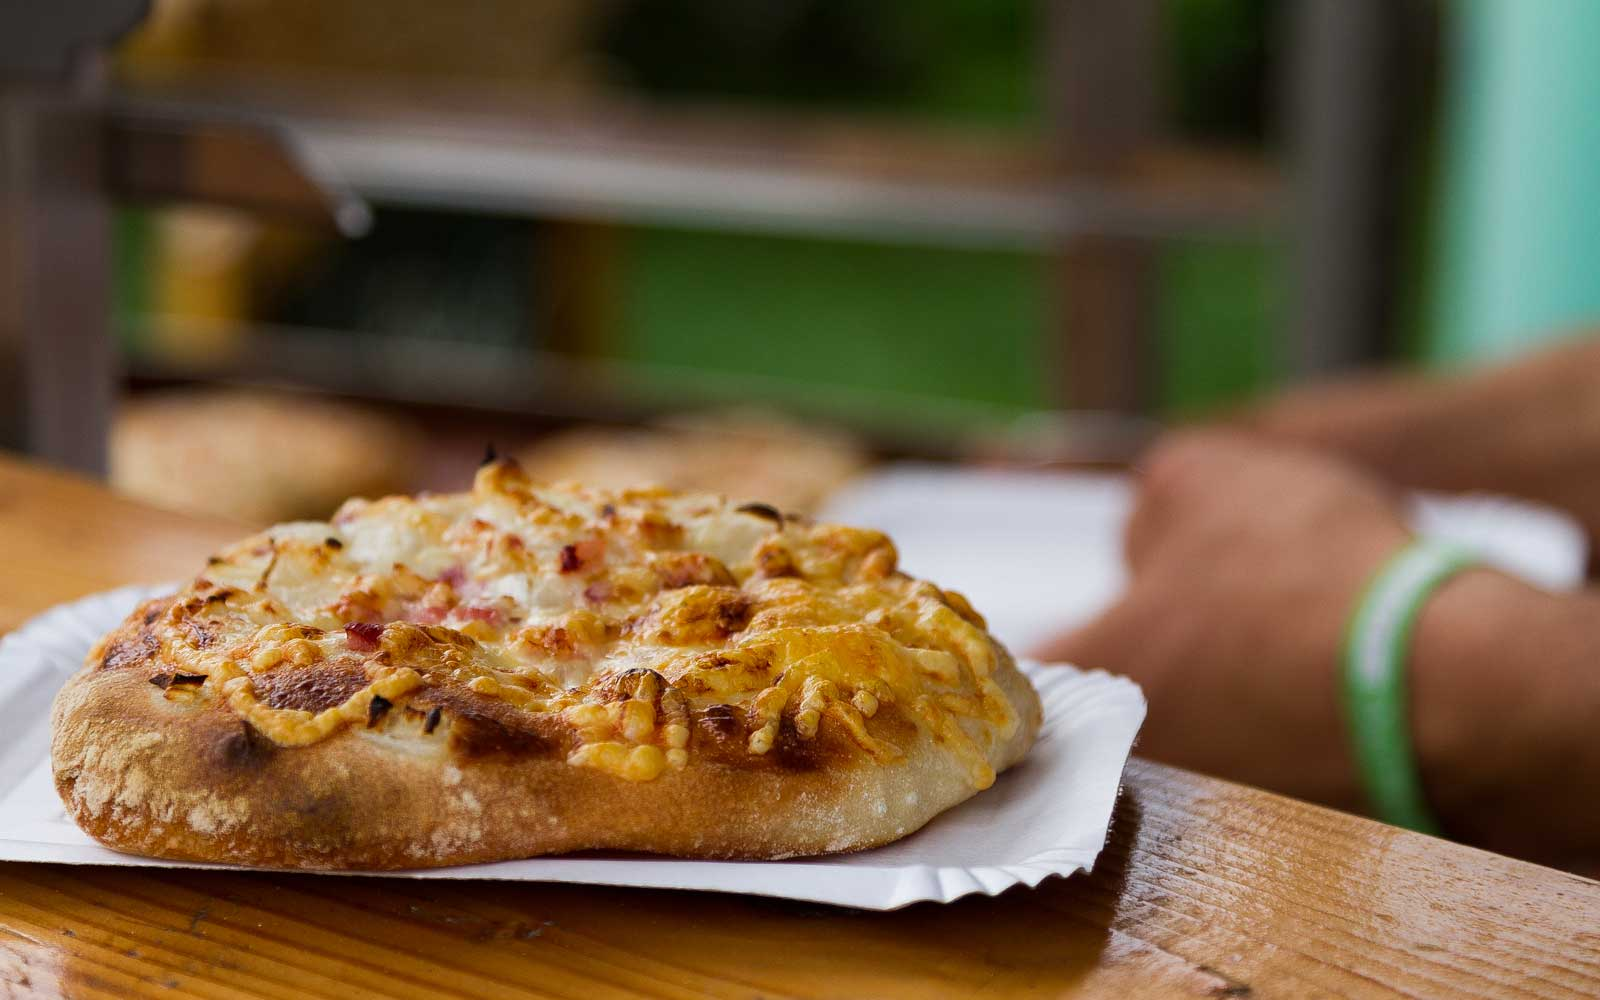 This Hungarian-style pizza is typically topped with bacon, onion, and cream.